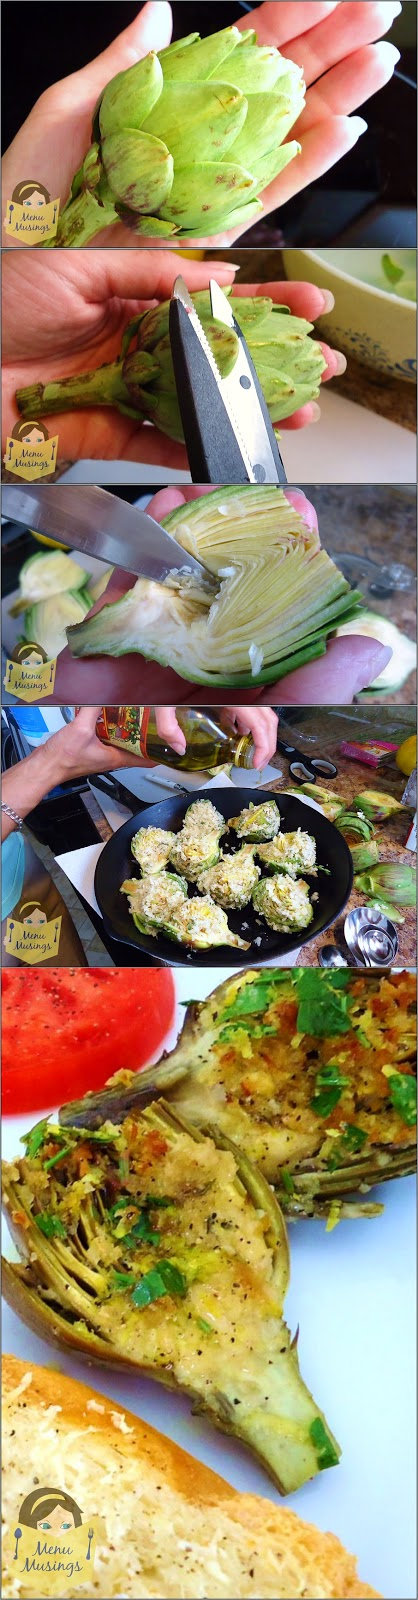 http://menumusings.blogspot.com/2011/06/stuffed-baby-artichokes-with-lemon.html